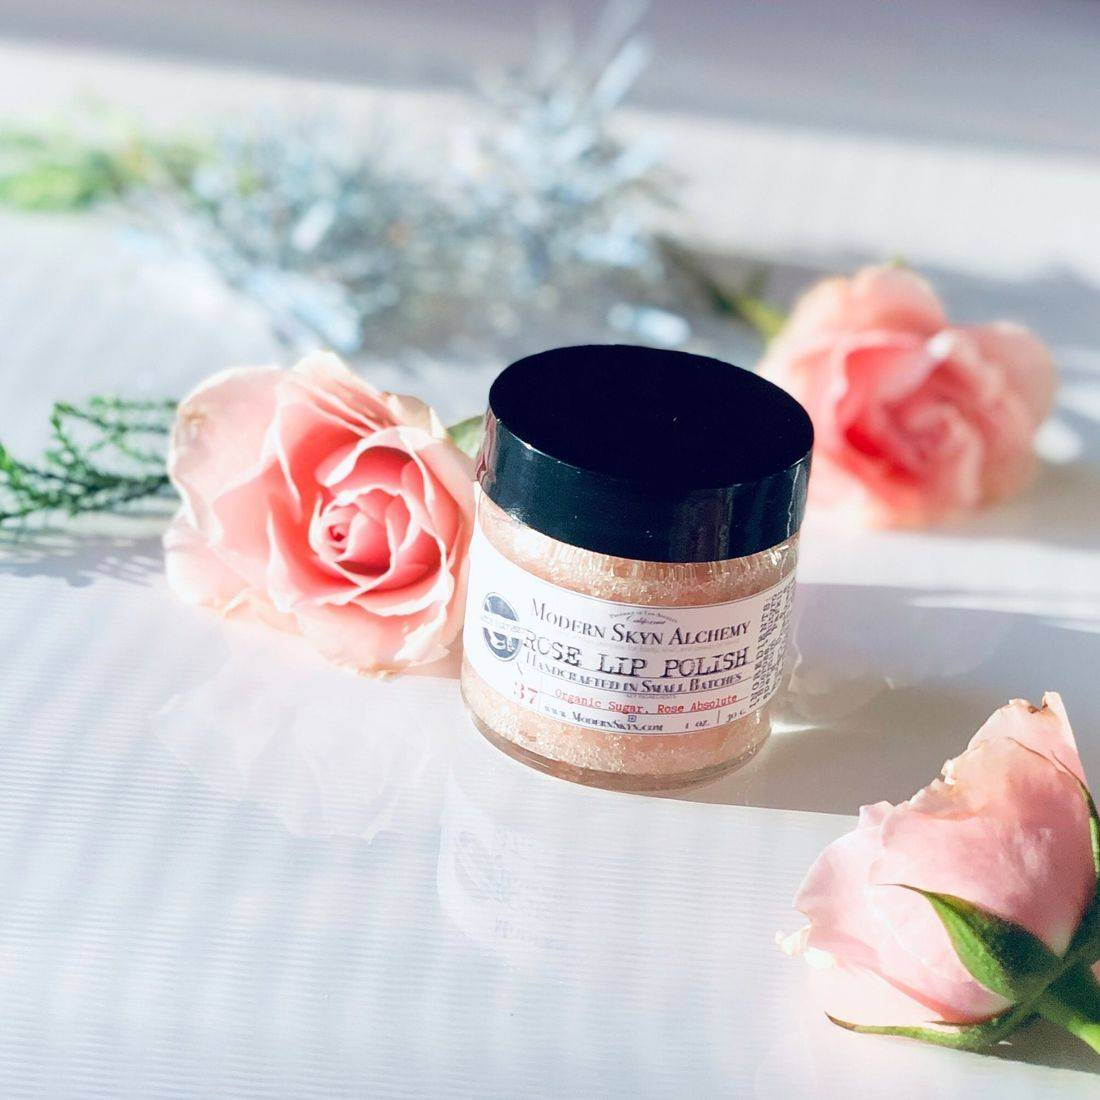 rose lip polish, lip scrub, best rose lip care, rose-infused beauty, clean beauty treats, holiday gifts